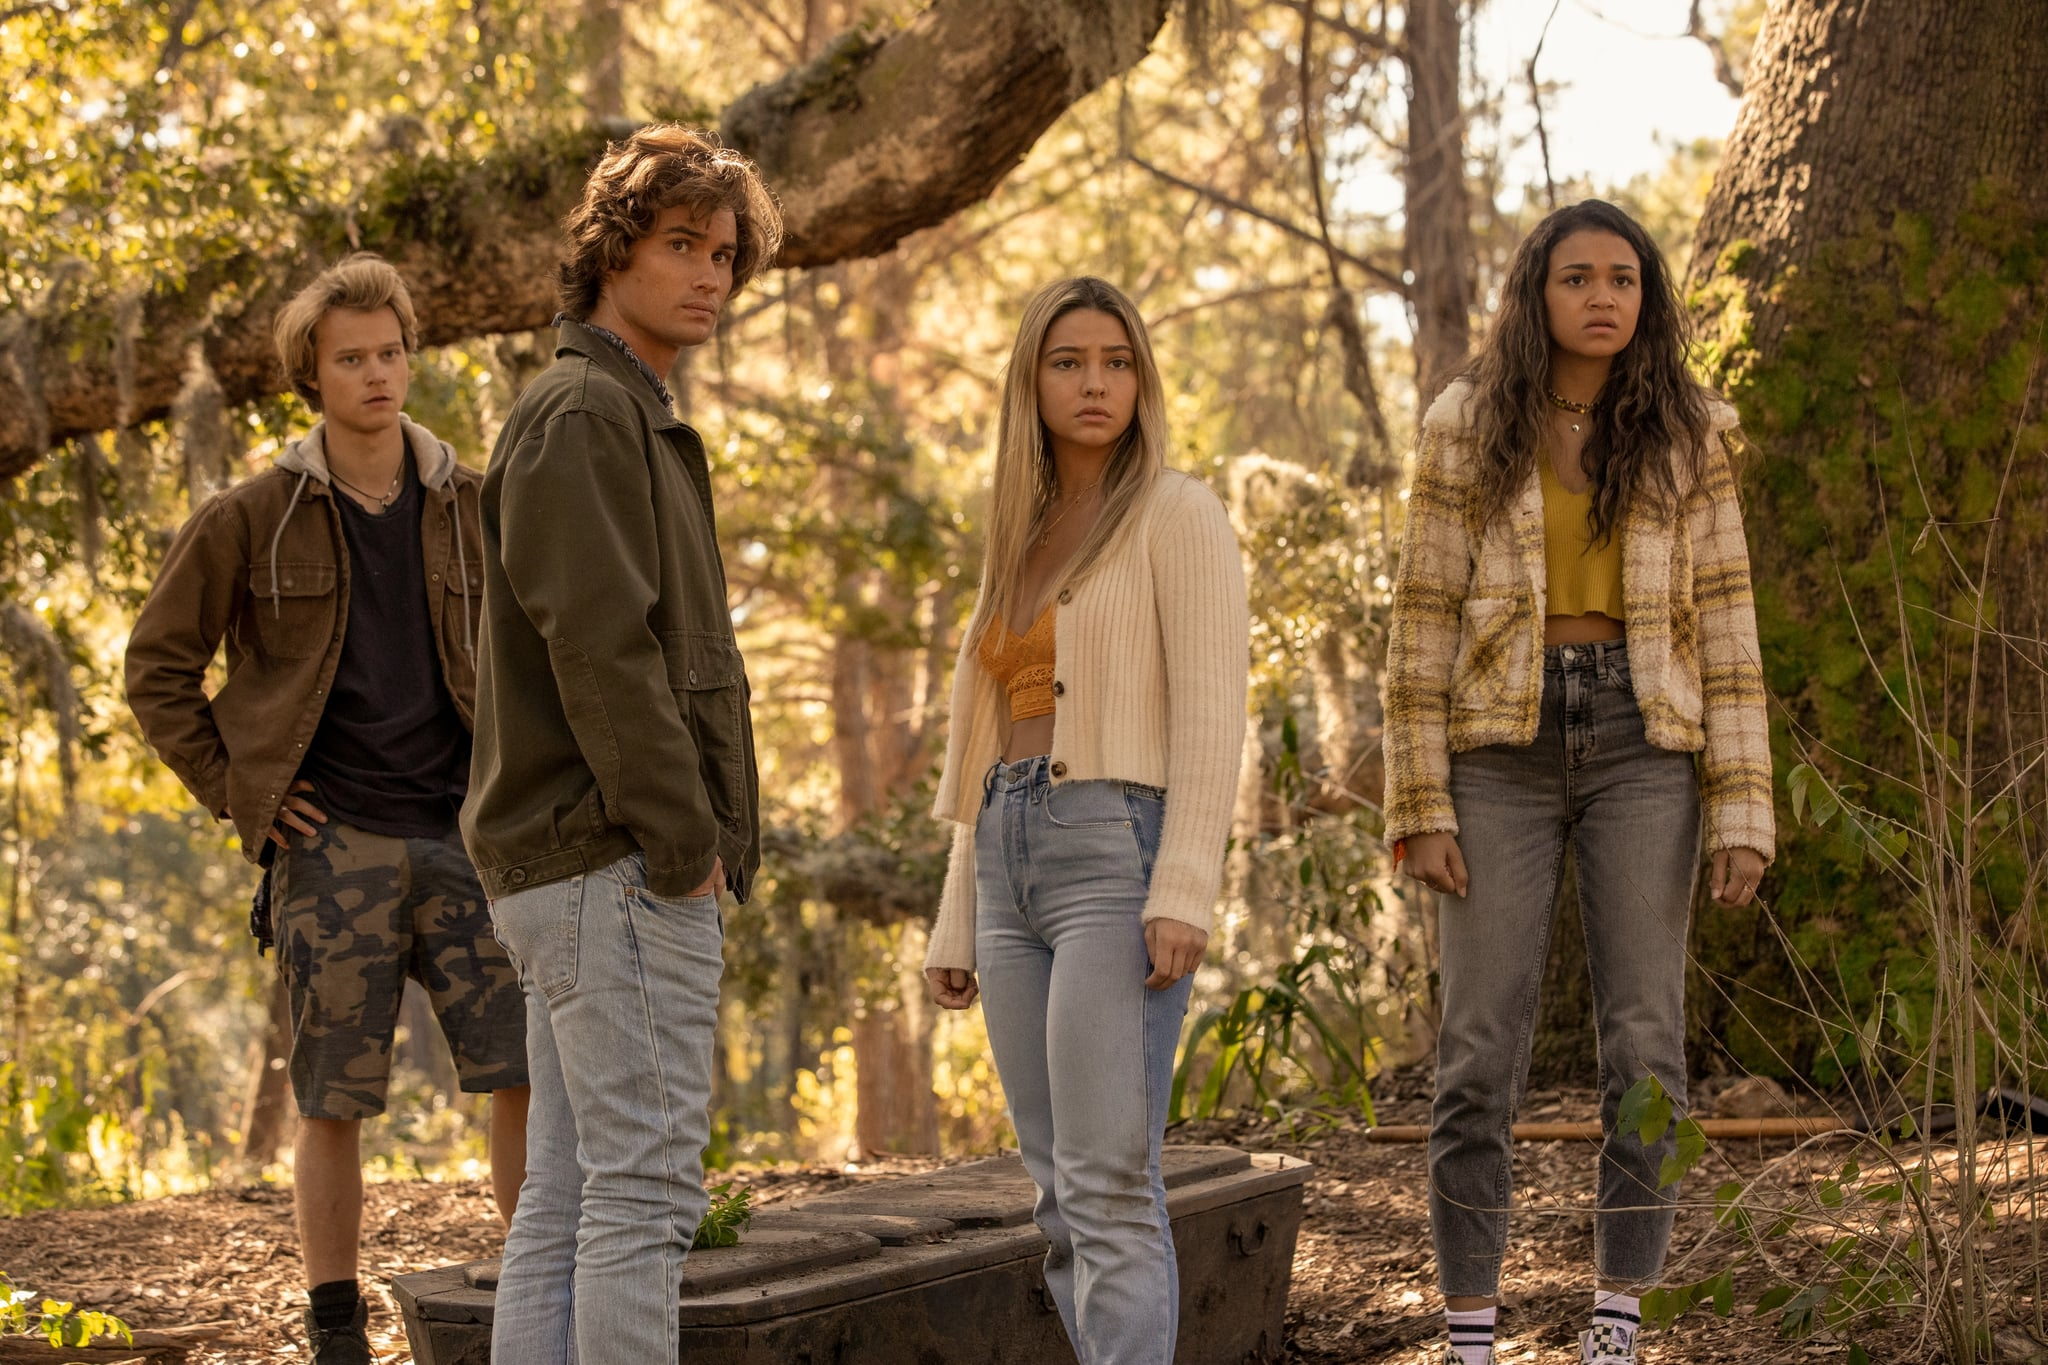 OUTER BANKS (L to R) RUDY PANKOW as JJ, CHASE STOKES as JOHN B, MADELYN CLINE as SARAH CAMERON, and MADISON BAILEY as KIARA in episode 208 of OUTER BANKS Cr. JACKSON LEE DAVIS/NETFLIX  2021